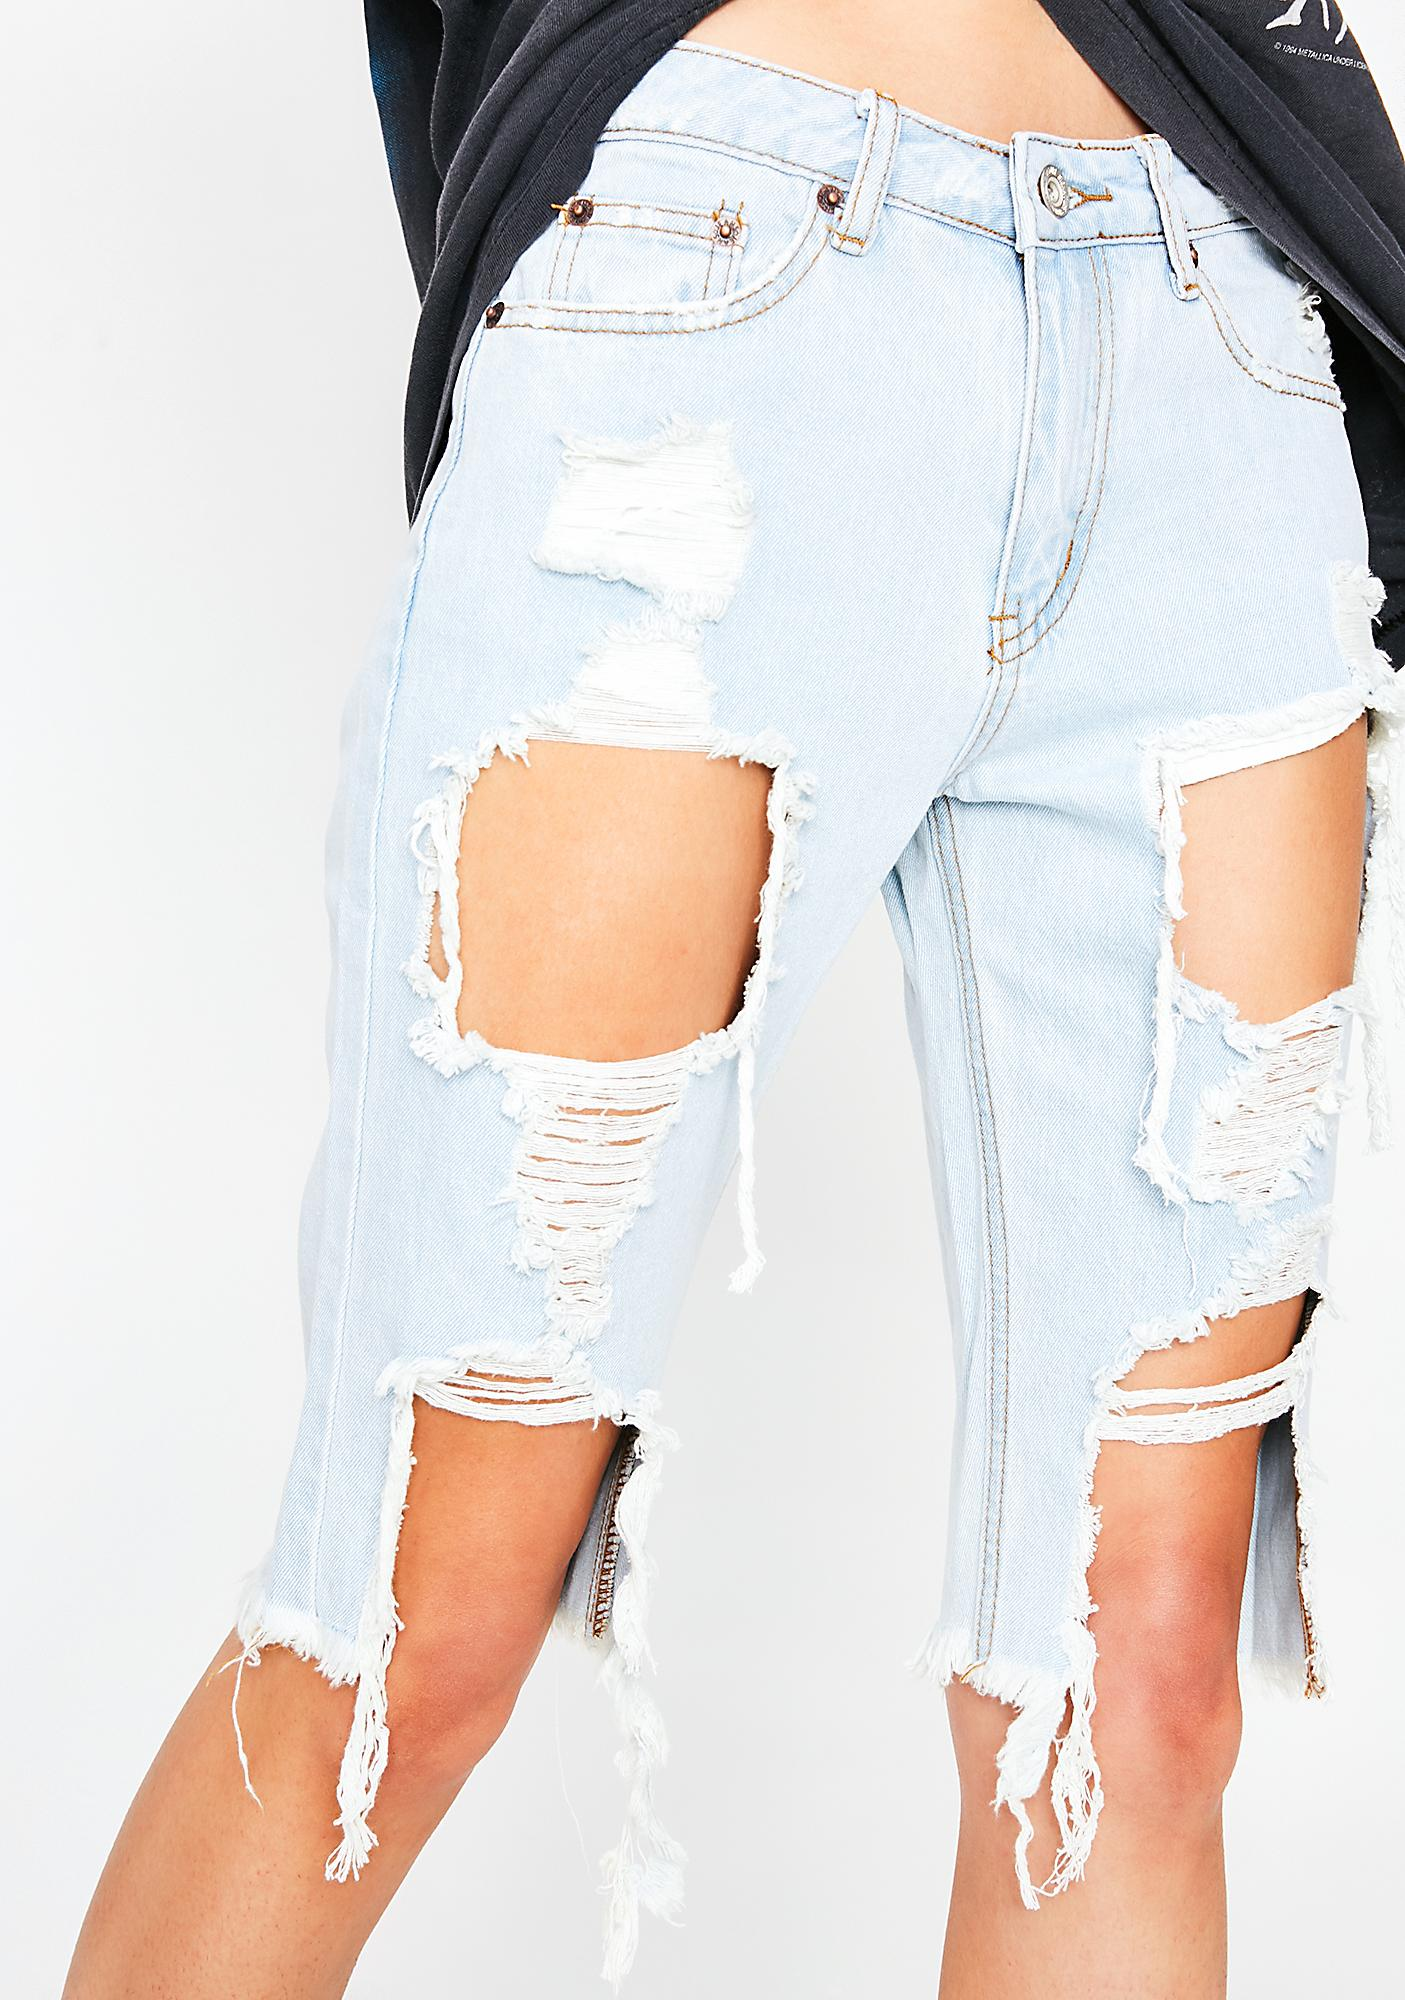 Sky Coastline Cruisin' Distressed Shorts